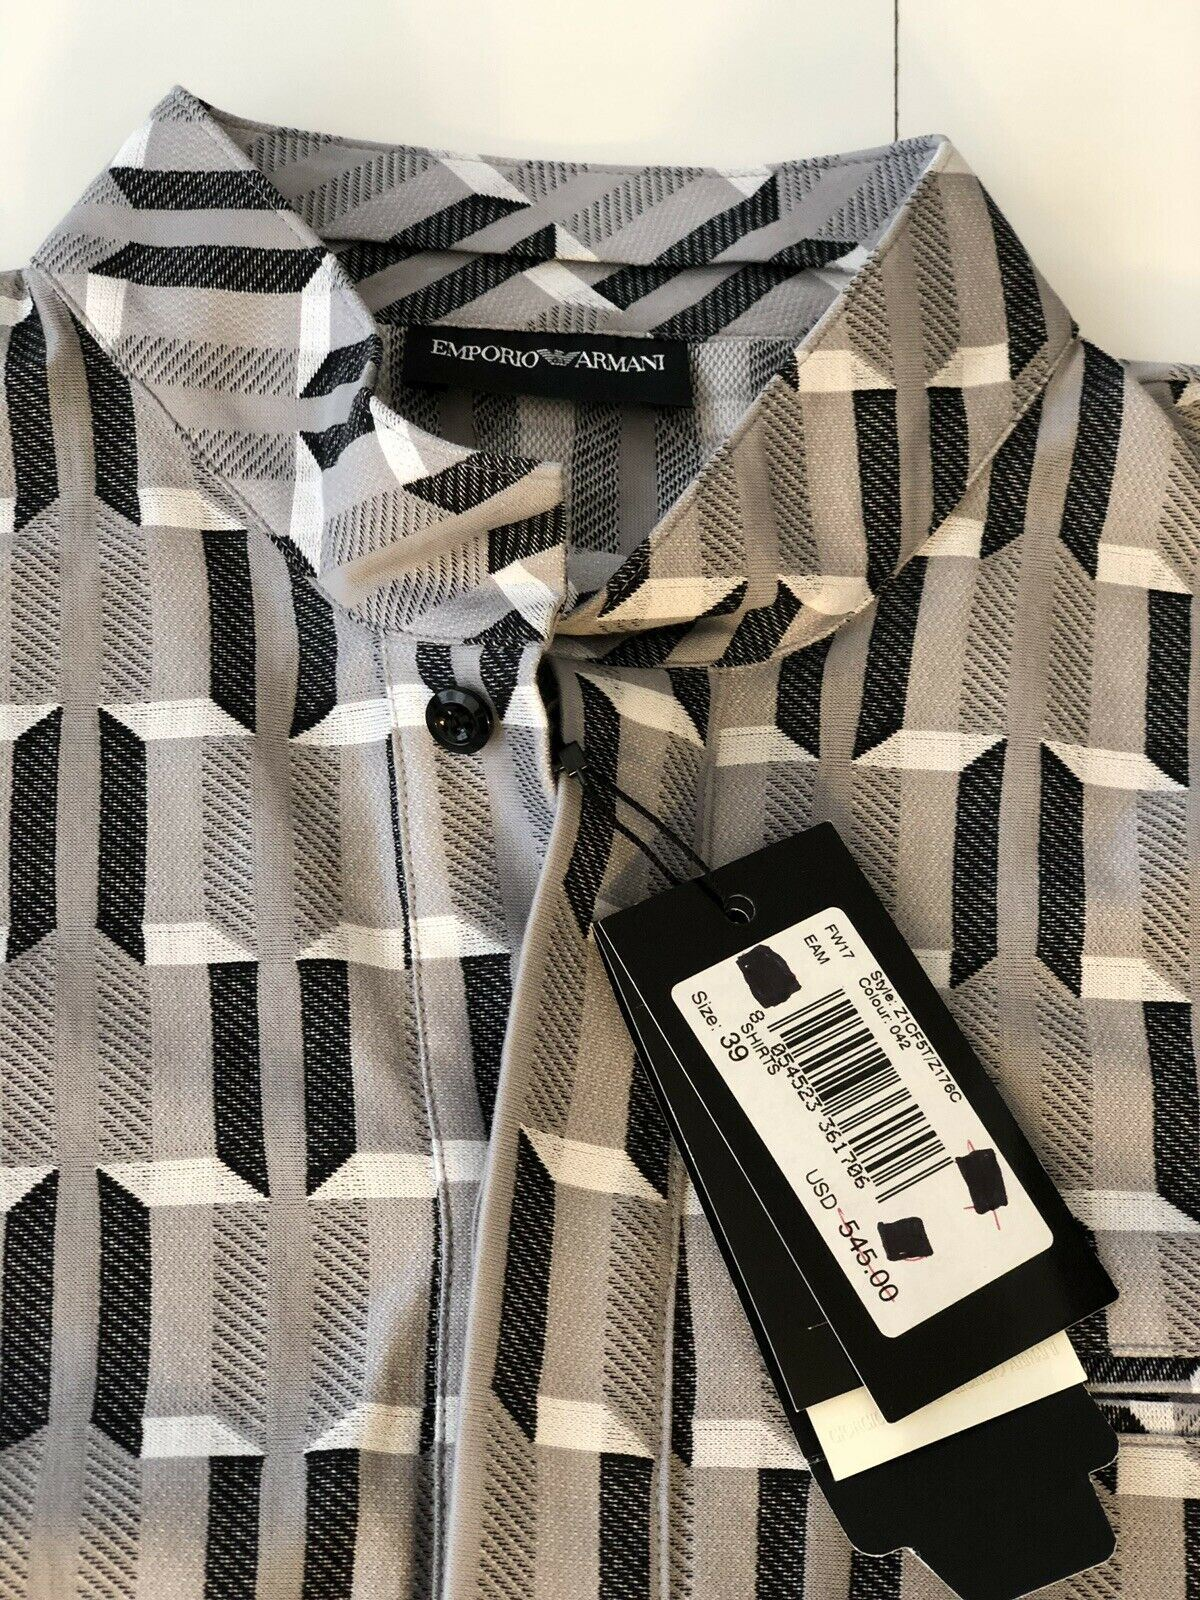 NWT Emperio Armani Mens Dress Shirt US 39 Style Z1CF5T/Z176C Color 042 $545